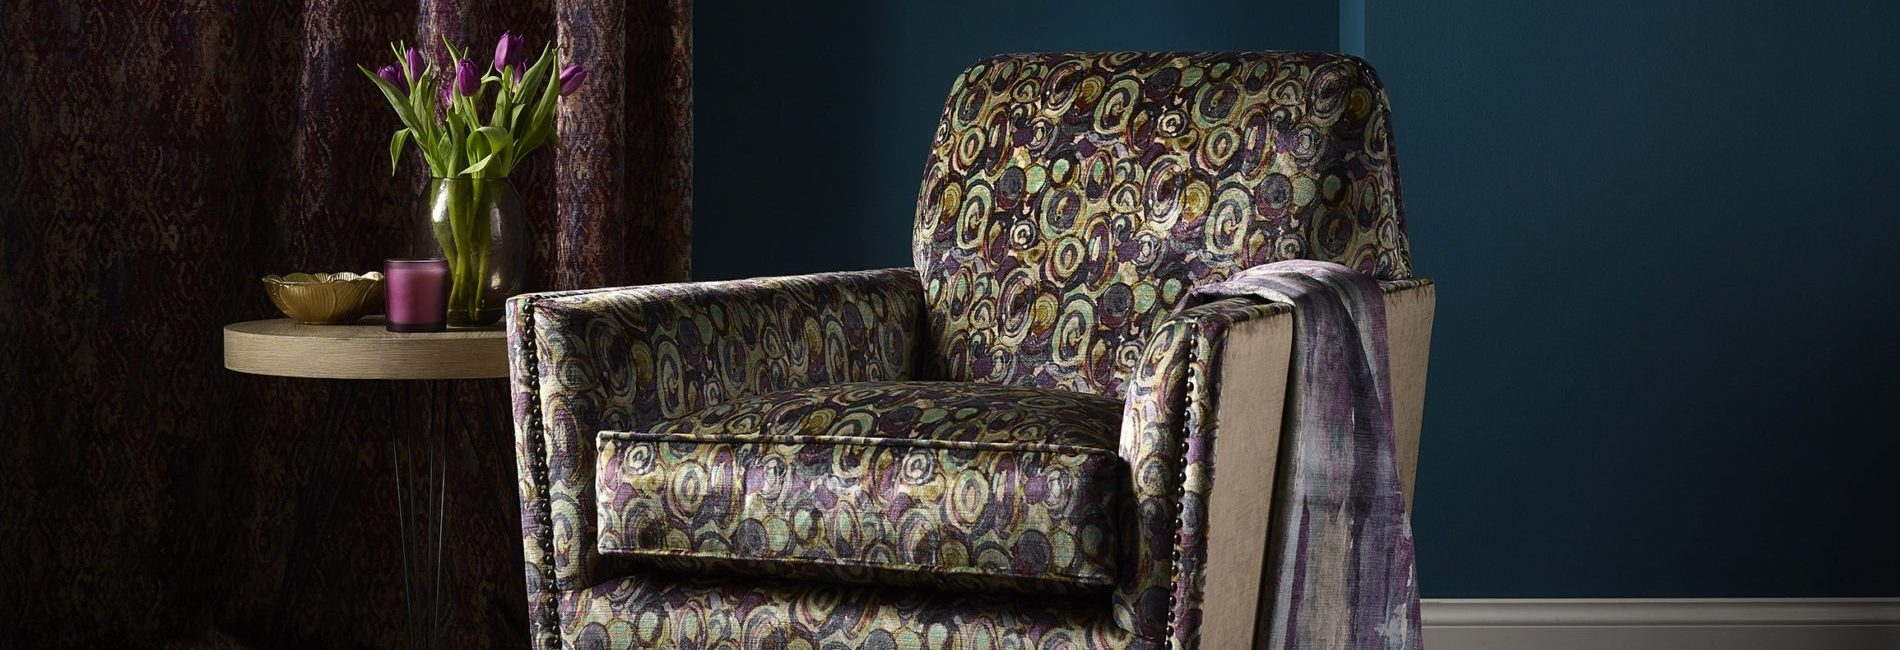 Weymss Fabrics New Decade fabric collection - available from Fabric Gallery and Interiors in Dunnington, York